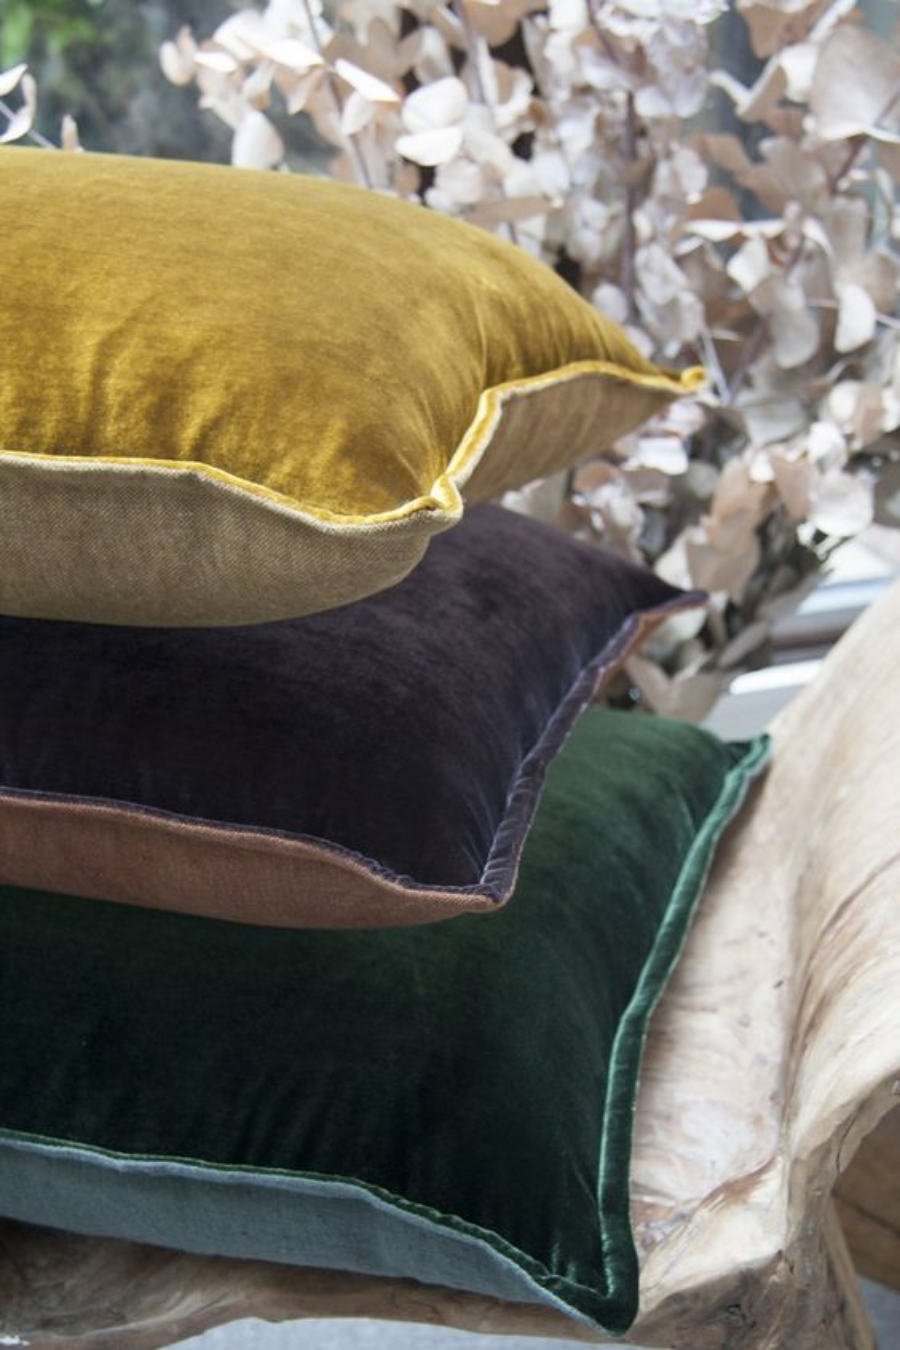 velvet Different Ways to Use Velvet in Your Home Decor Different Ways to Use Velvet in Your Home Decor 5